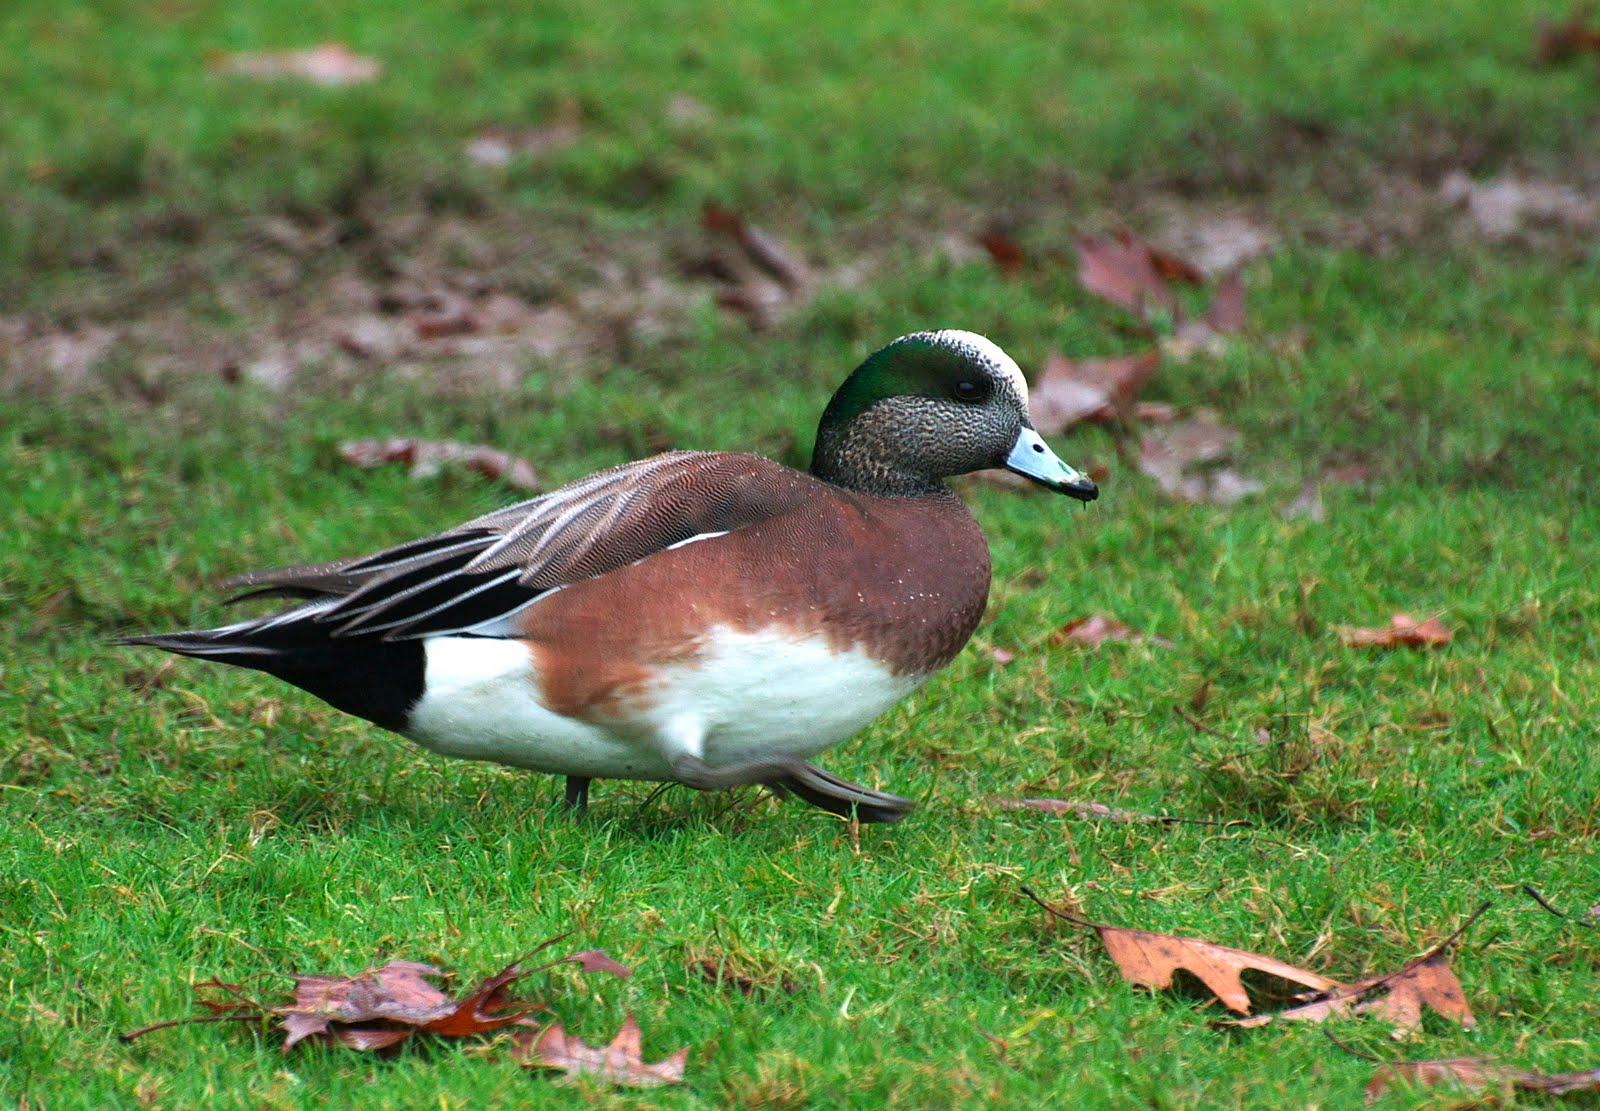 American Wigeon on the grass